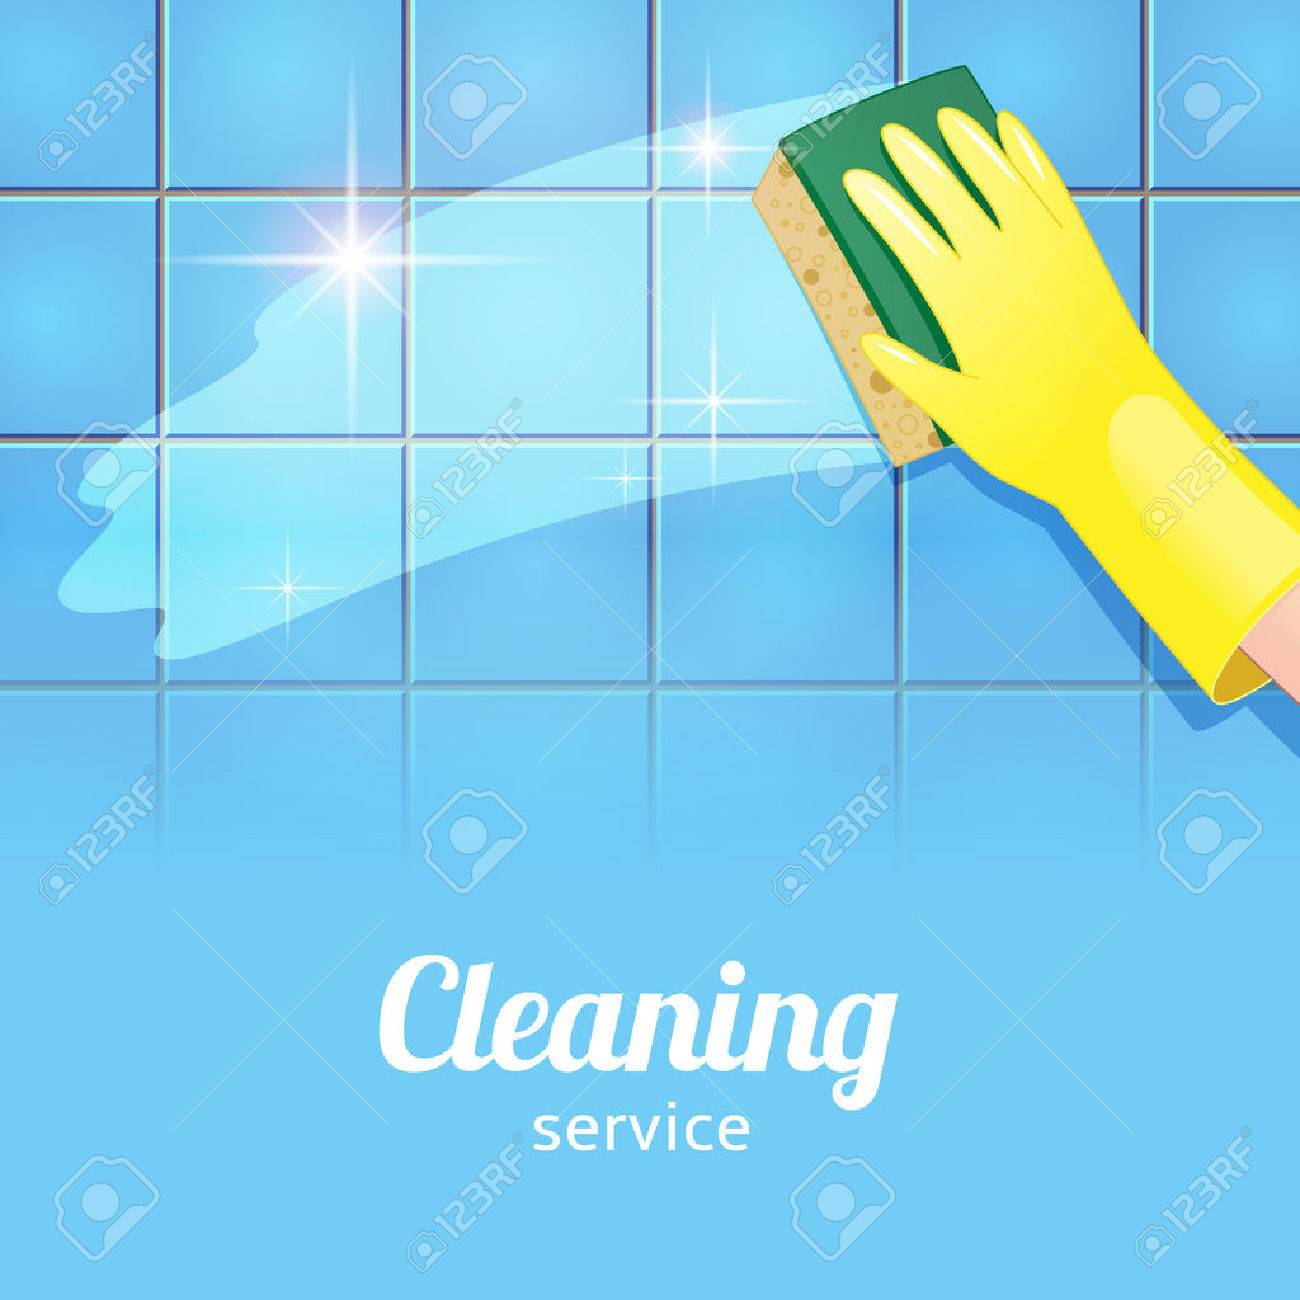 cleaning service images stock pictures royalty cleaning cleaning service concept background for cleaning service hand in yellow glove cleans the blue